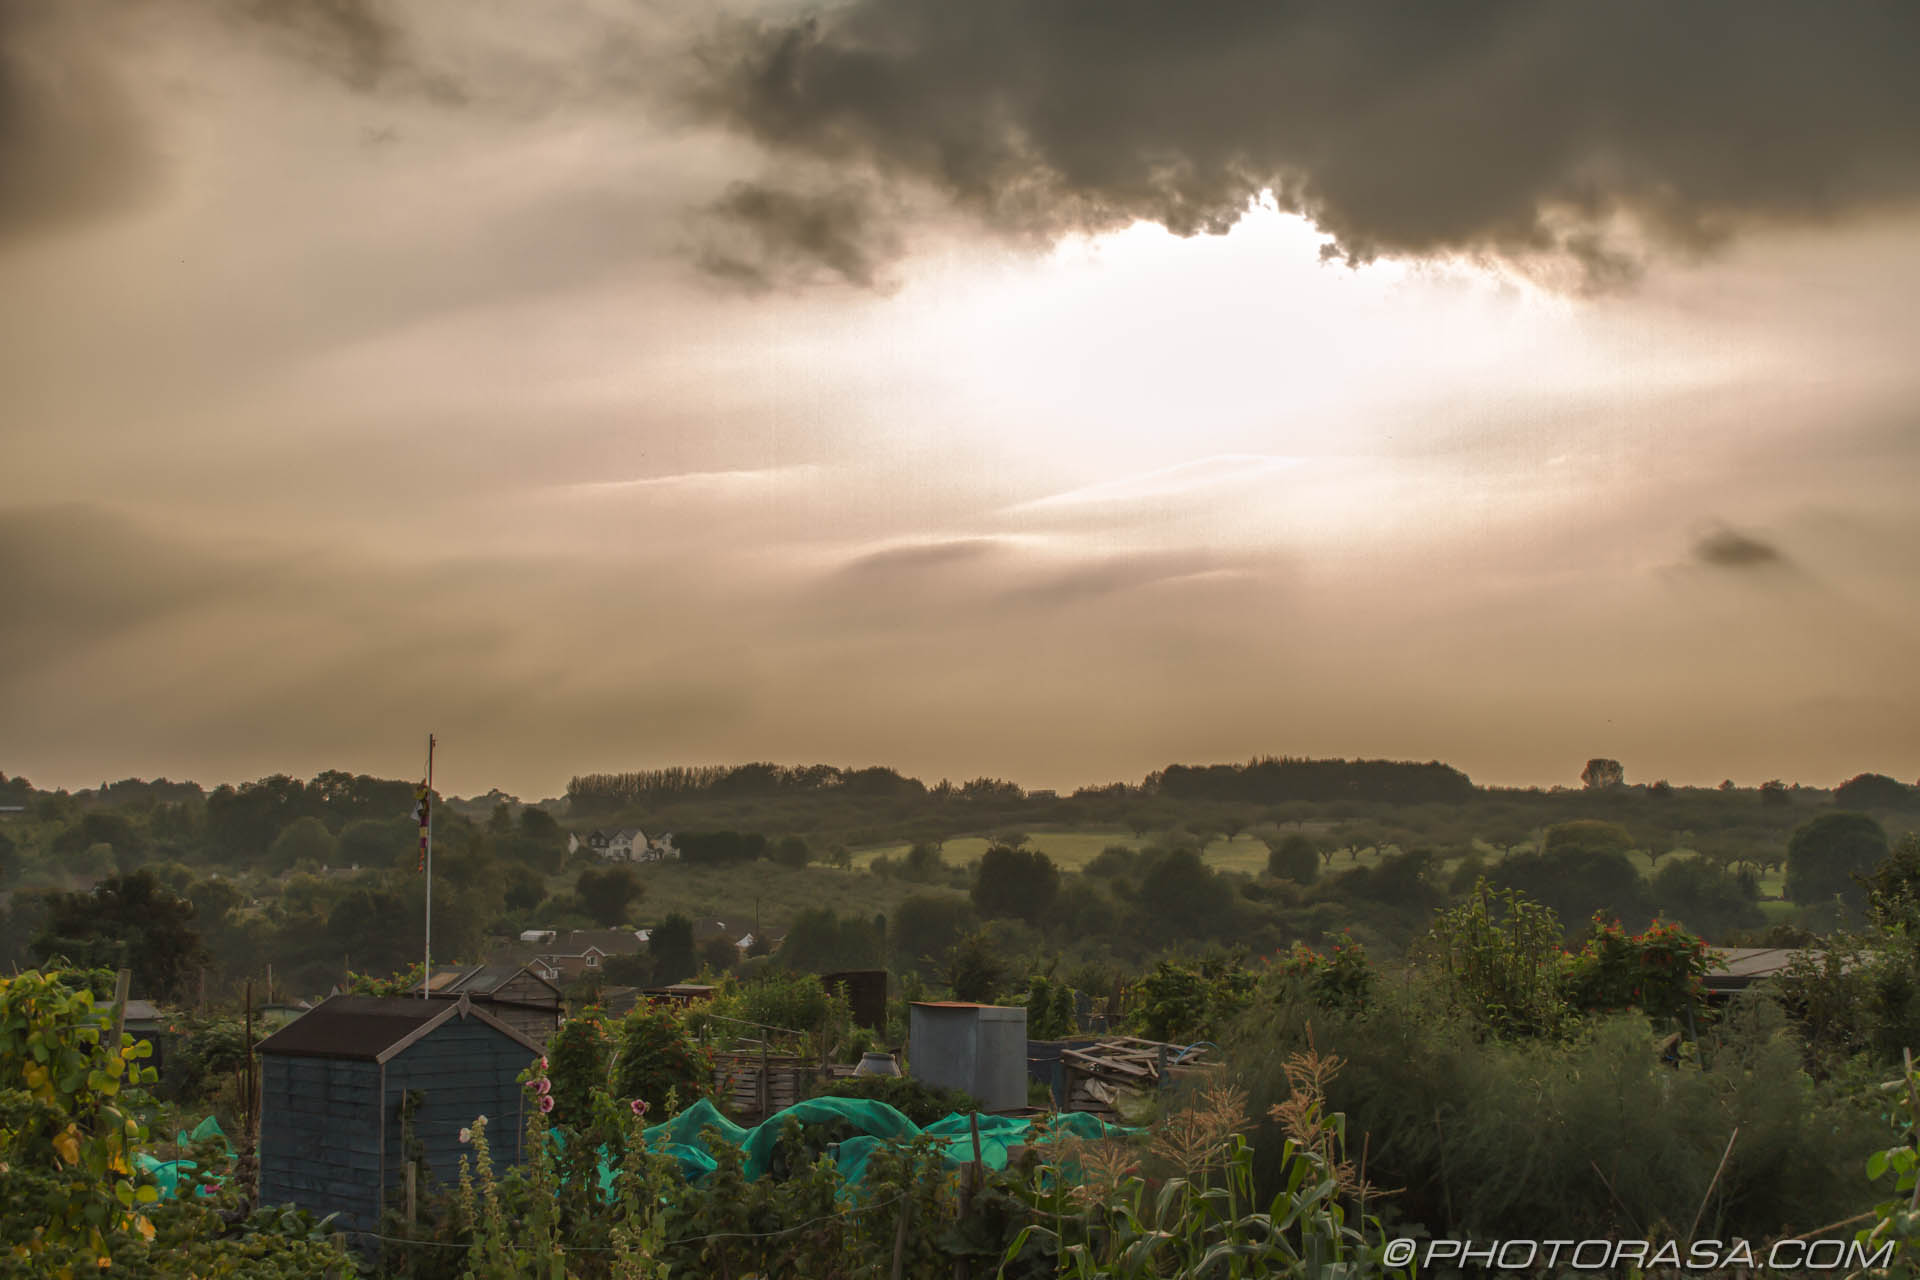 https://photorasa.com/sun-shining-through-the-clouds/hazy-sun-and-clouds-over-an-allotment/